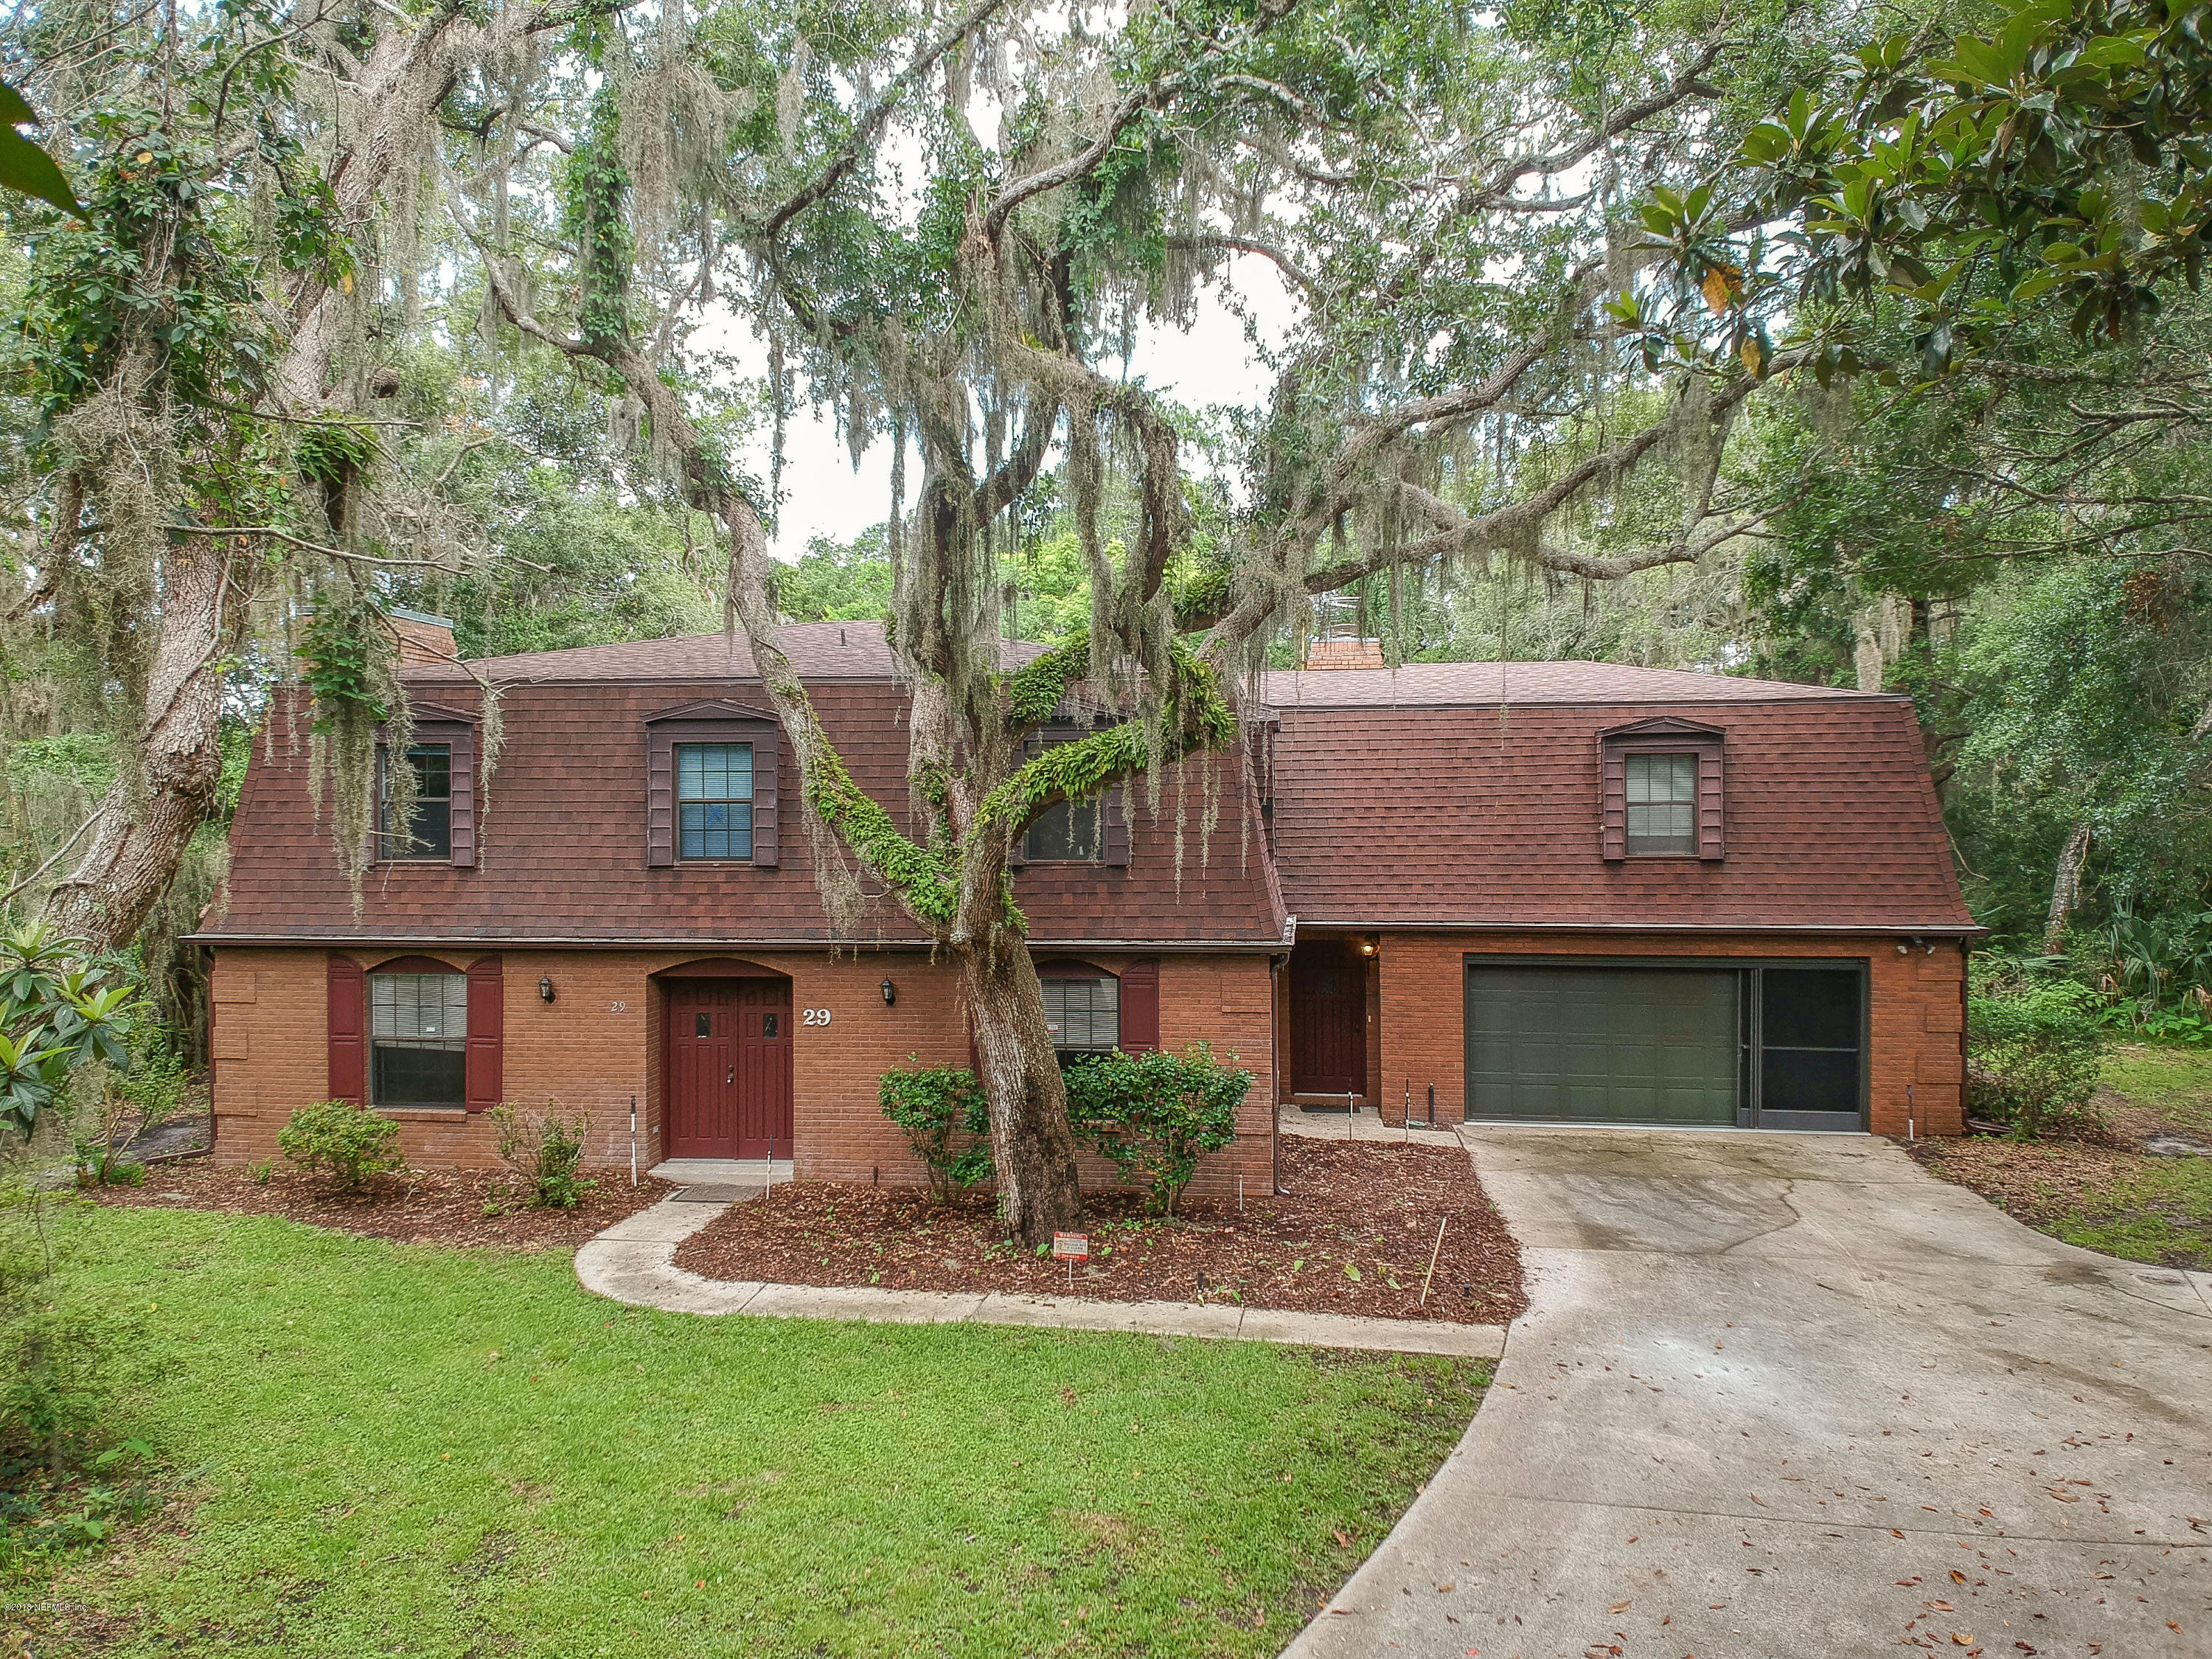 29 SUNFISH, ST AUGUSTINE, FLORIDA 32080, 5 Bedrooms Bedrooms, ,3 BathroomsBathrooms,Residential - single family,For sale,SUNFISH,944136